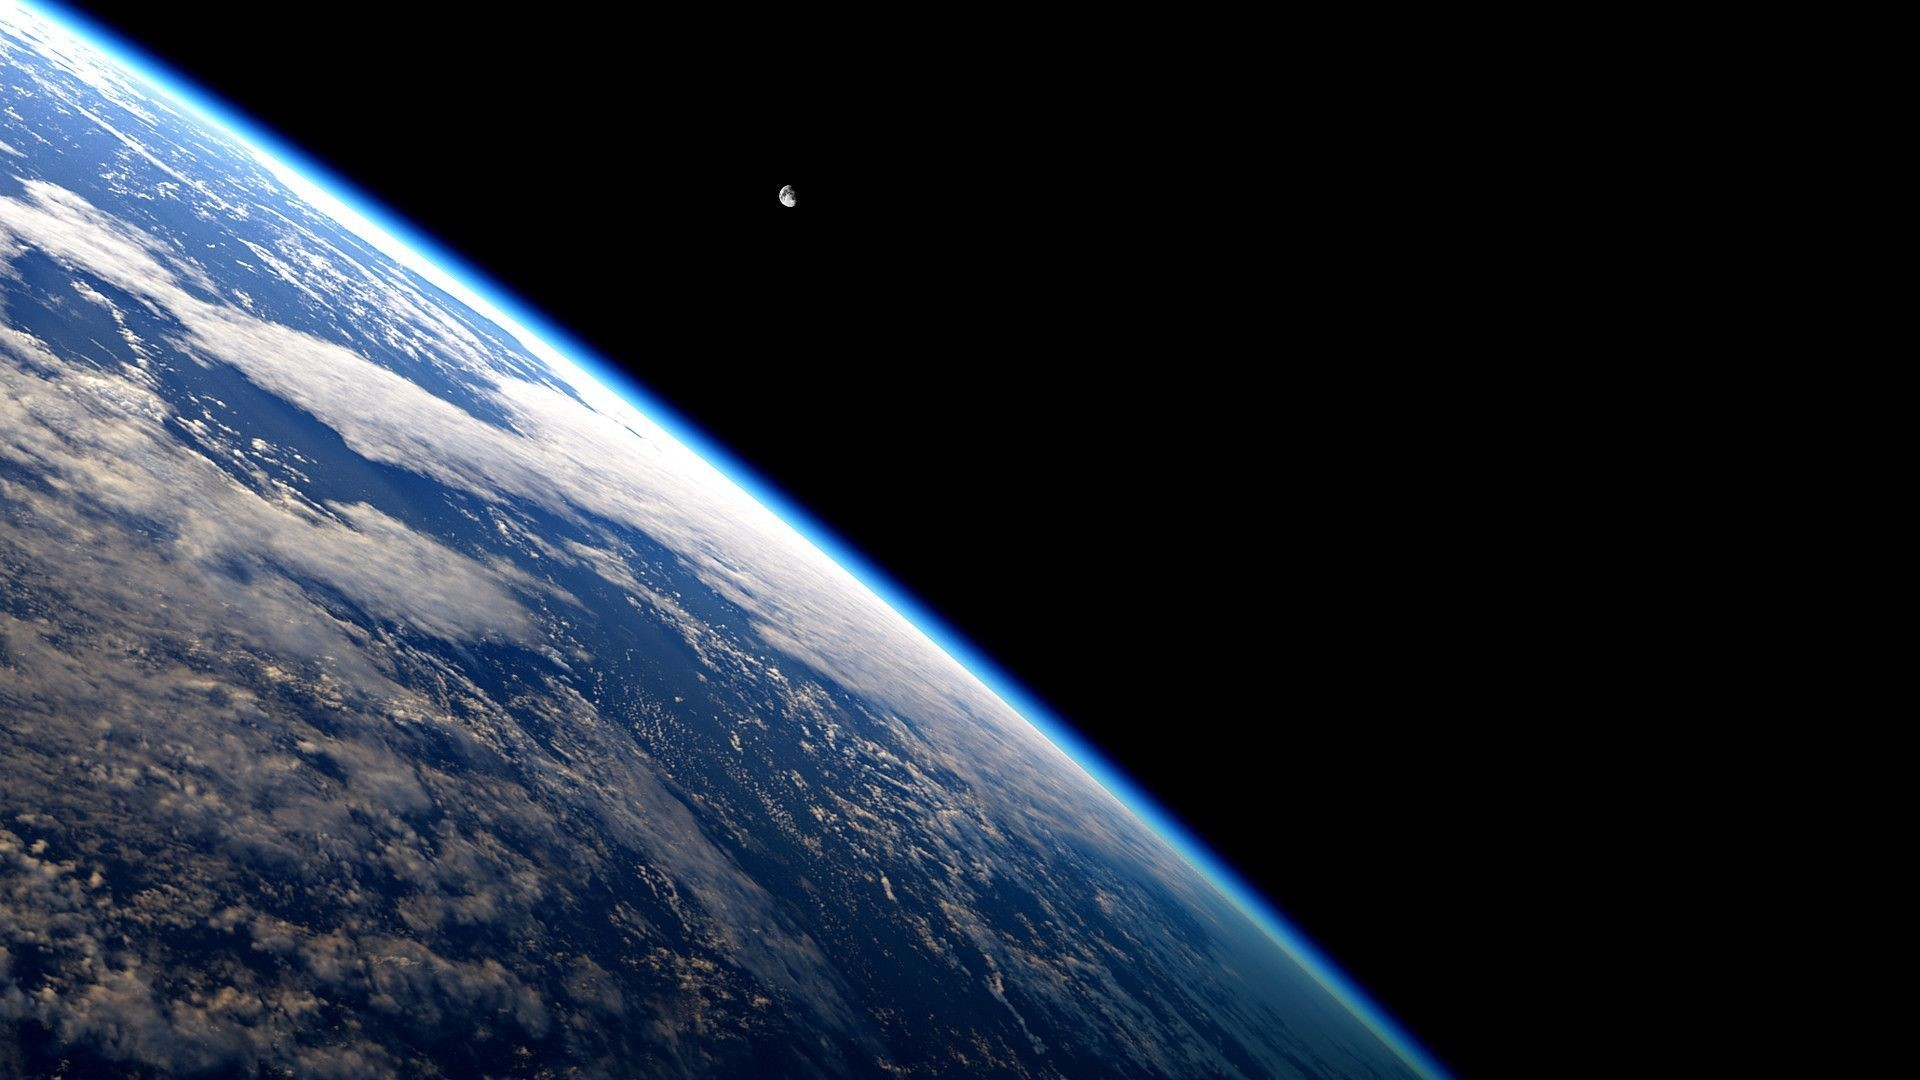 Earth Surface Hd Wallpaper Kolpaper Awesome Free Hd Wallpapers